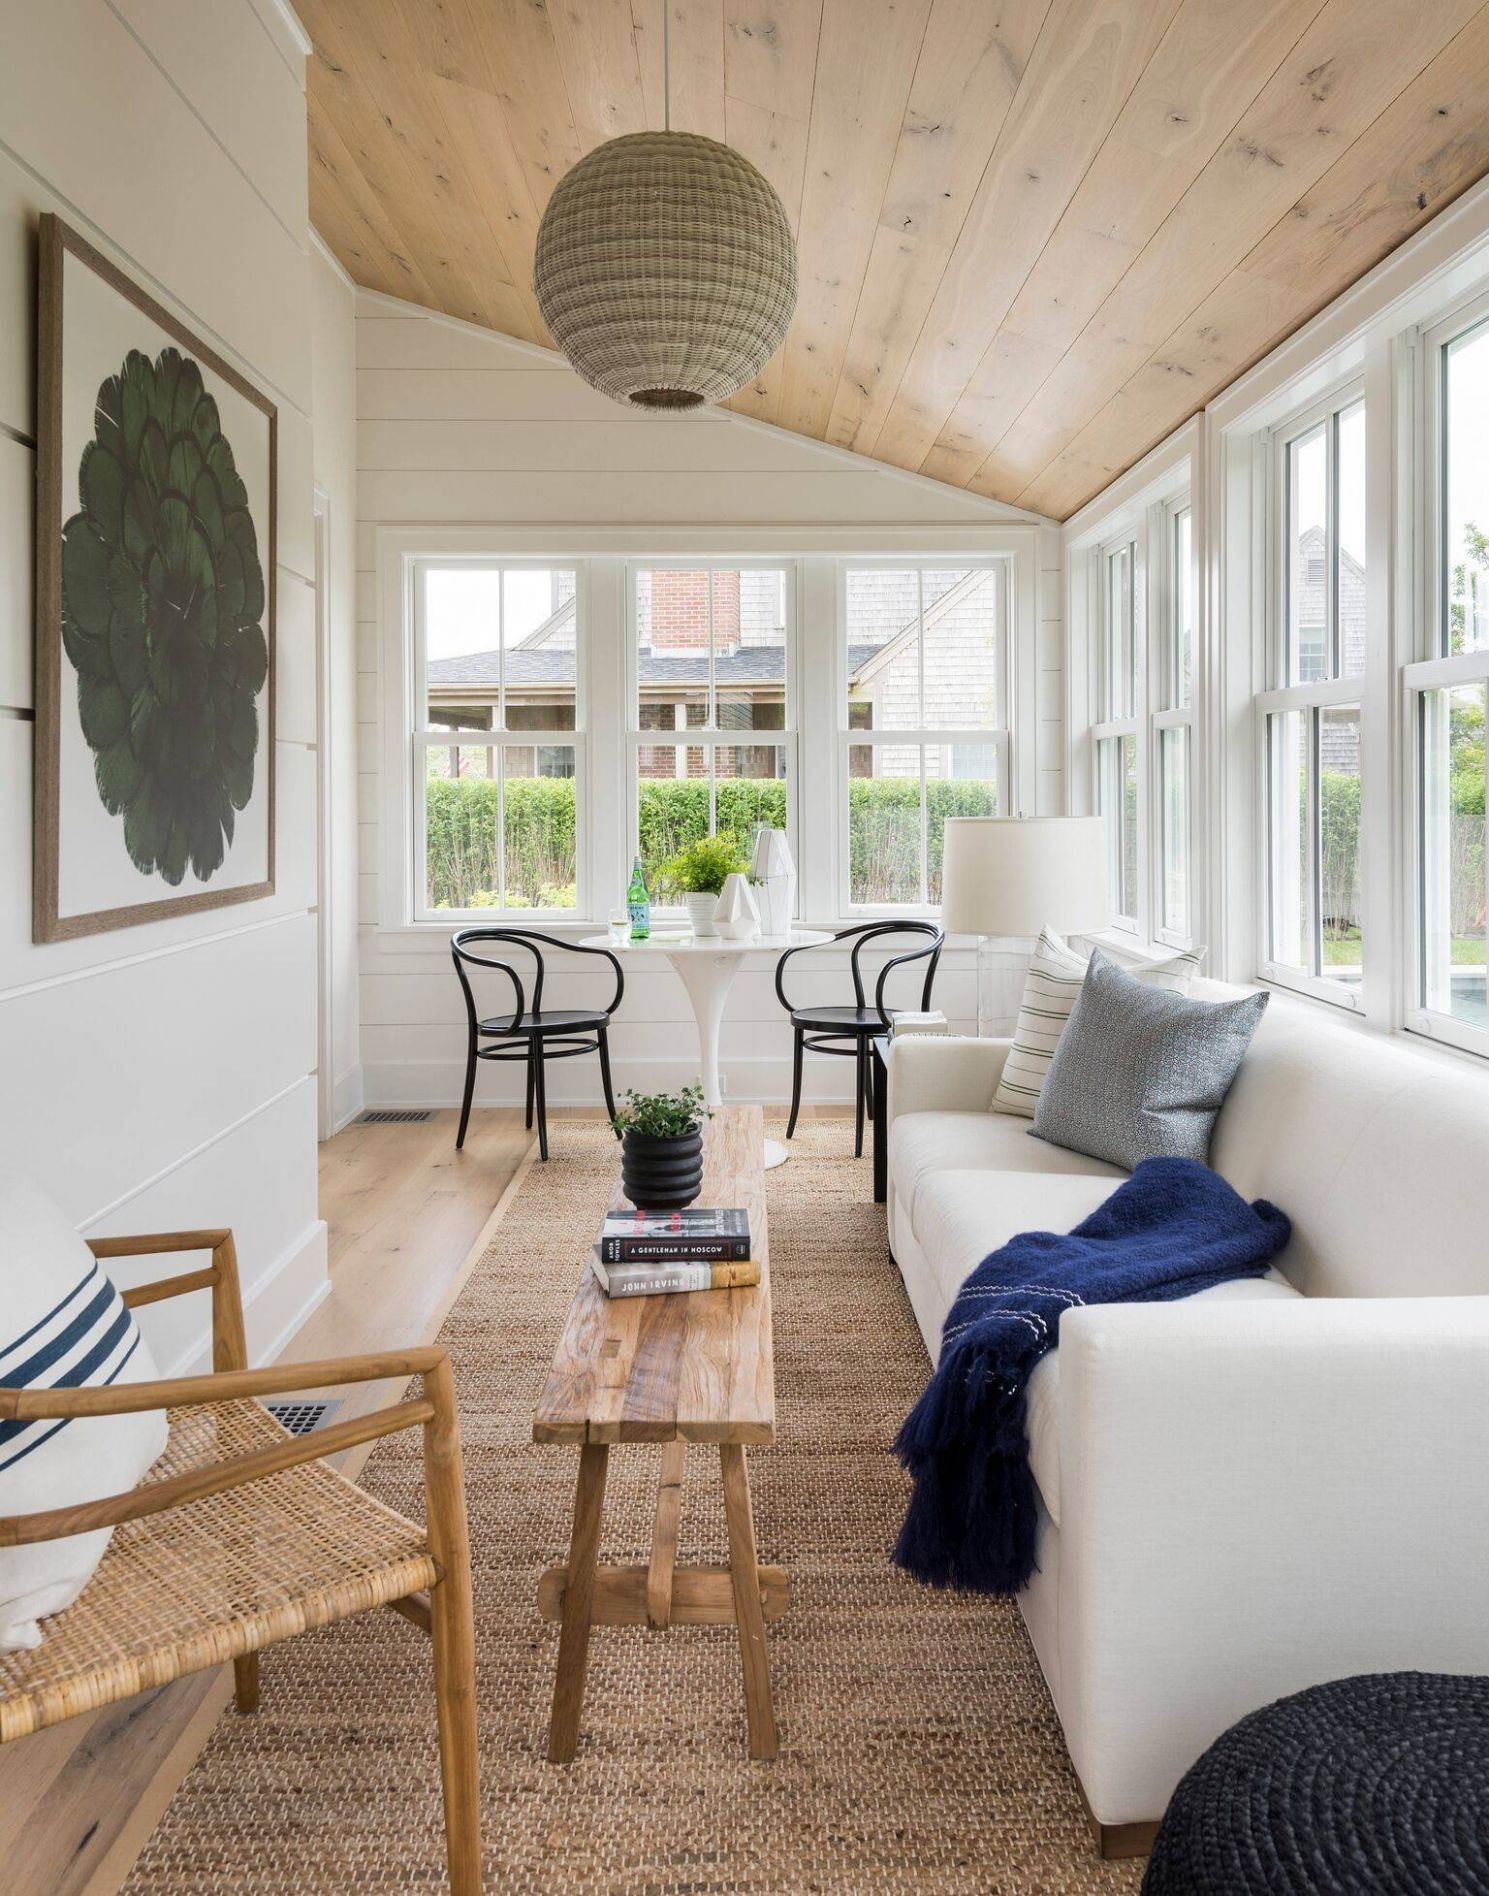 12 Beautiful Sunroom Pictures & Ideas | Houzz - long sunroom ideas